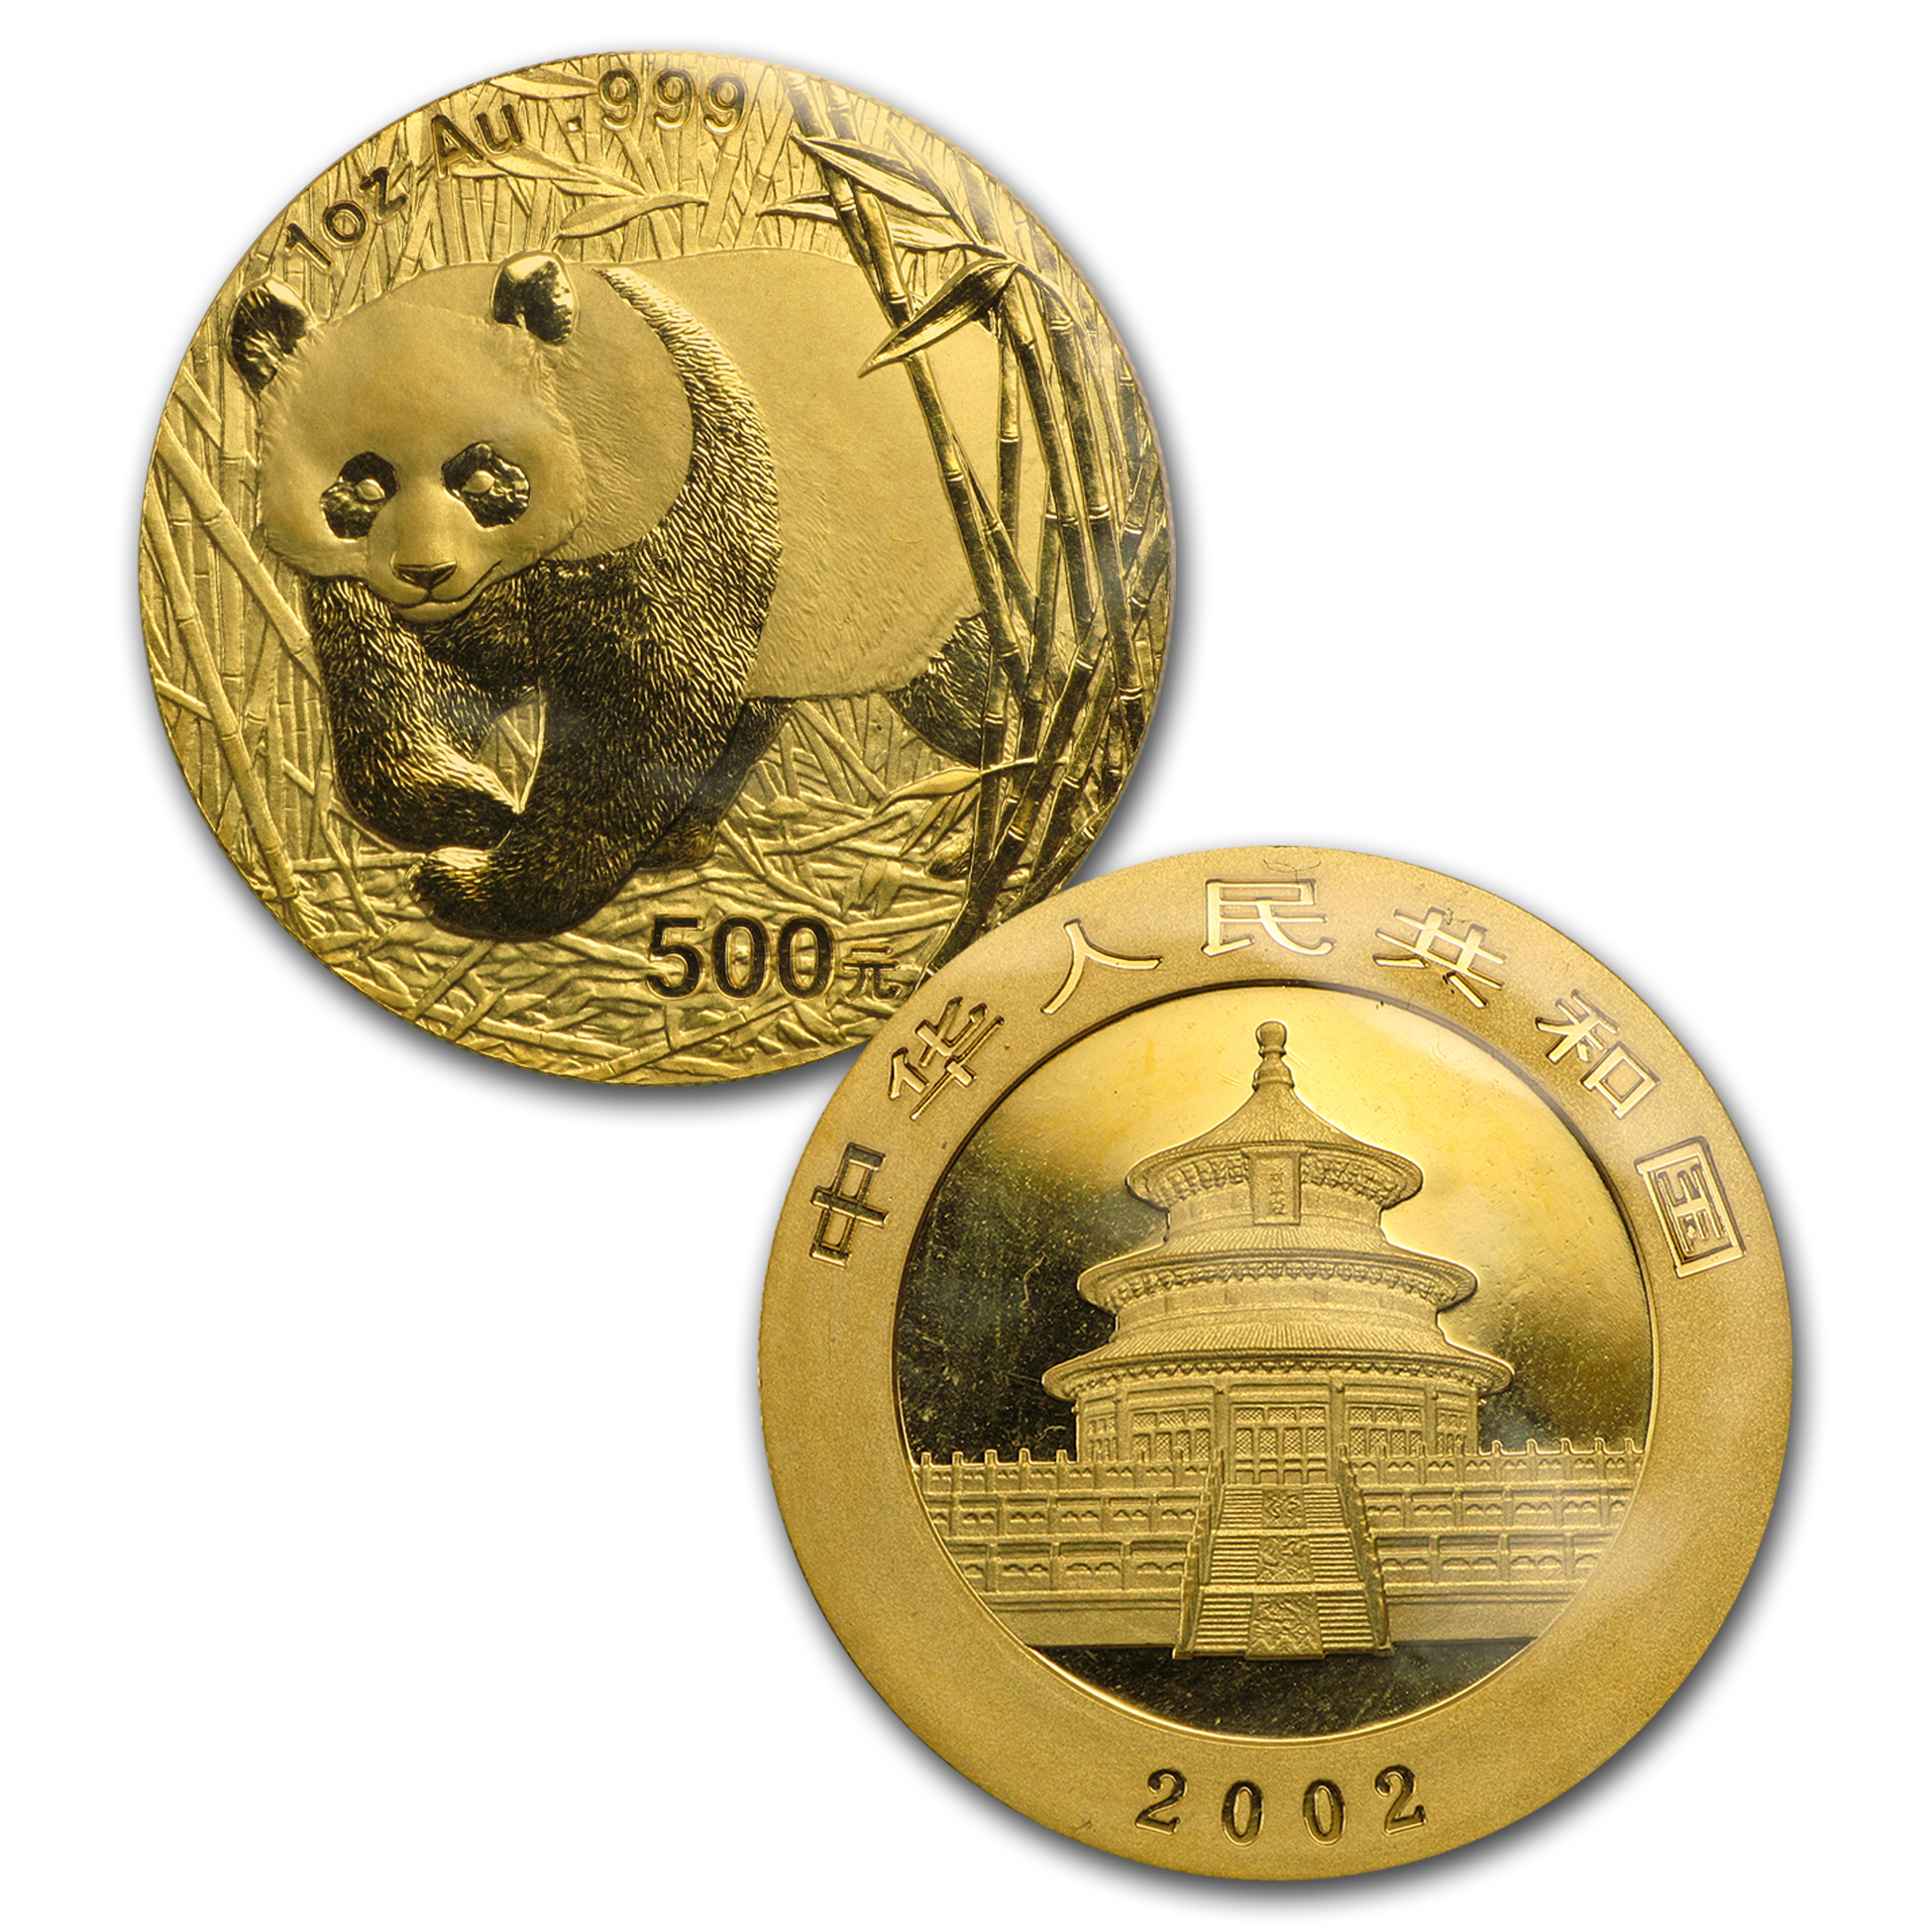 2002 China 1 oz Gold Panda BU (Sealed Sheet of 10)